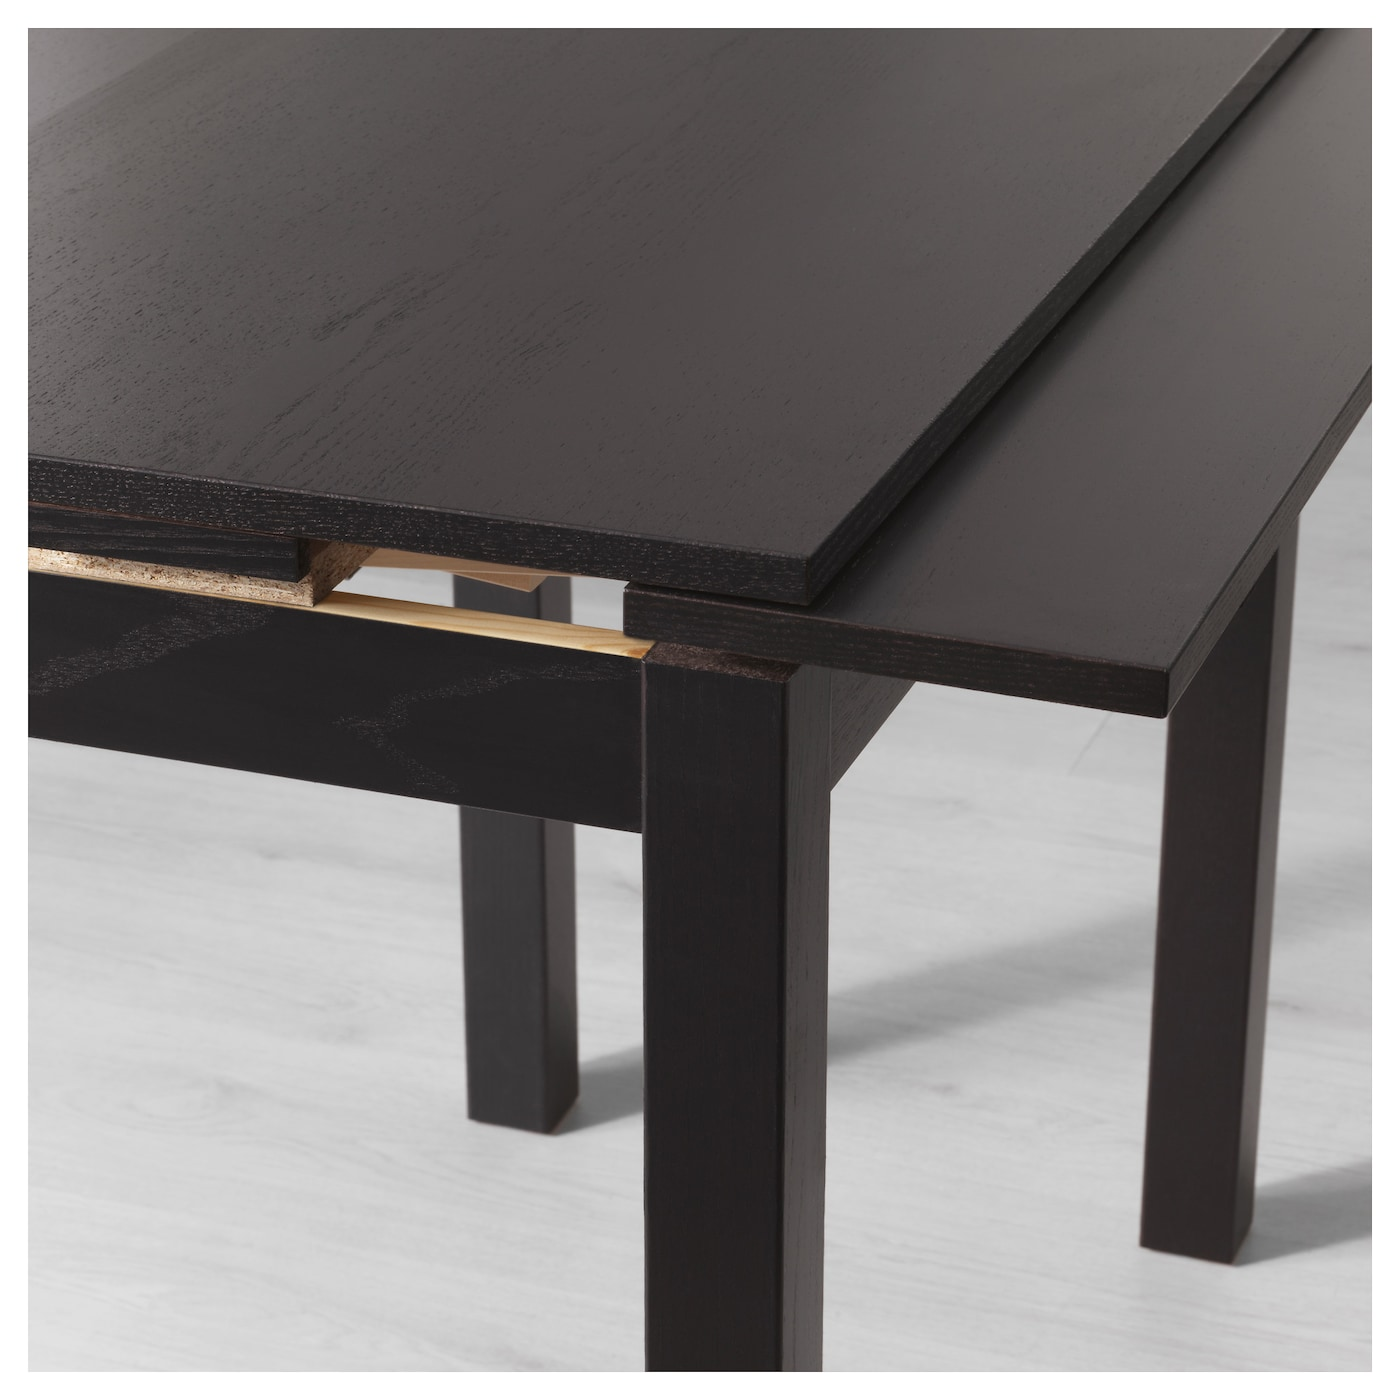 Bjursta extendable table brown black 50 70 90x90 cm ikea for Table 90x90 extensible